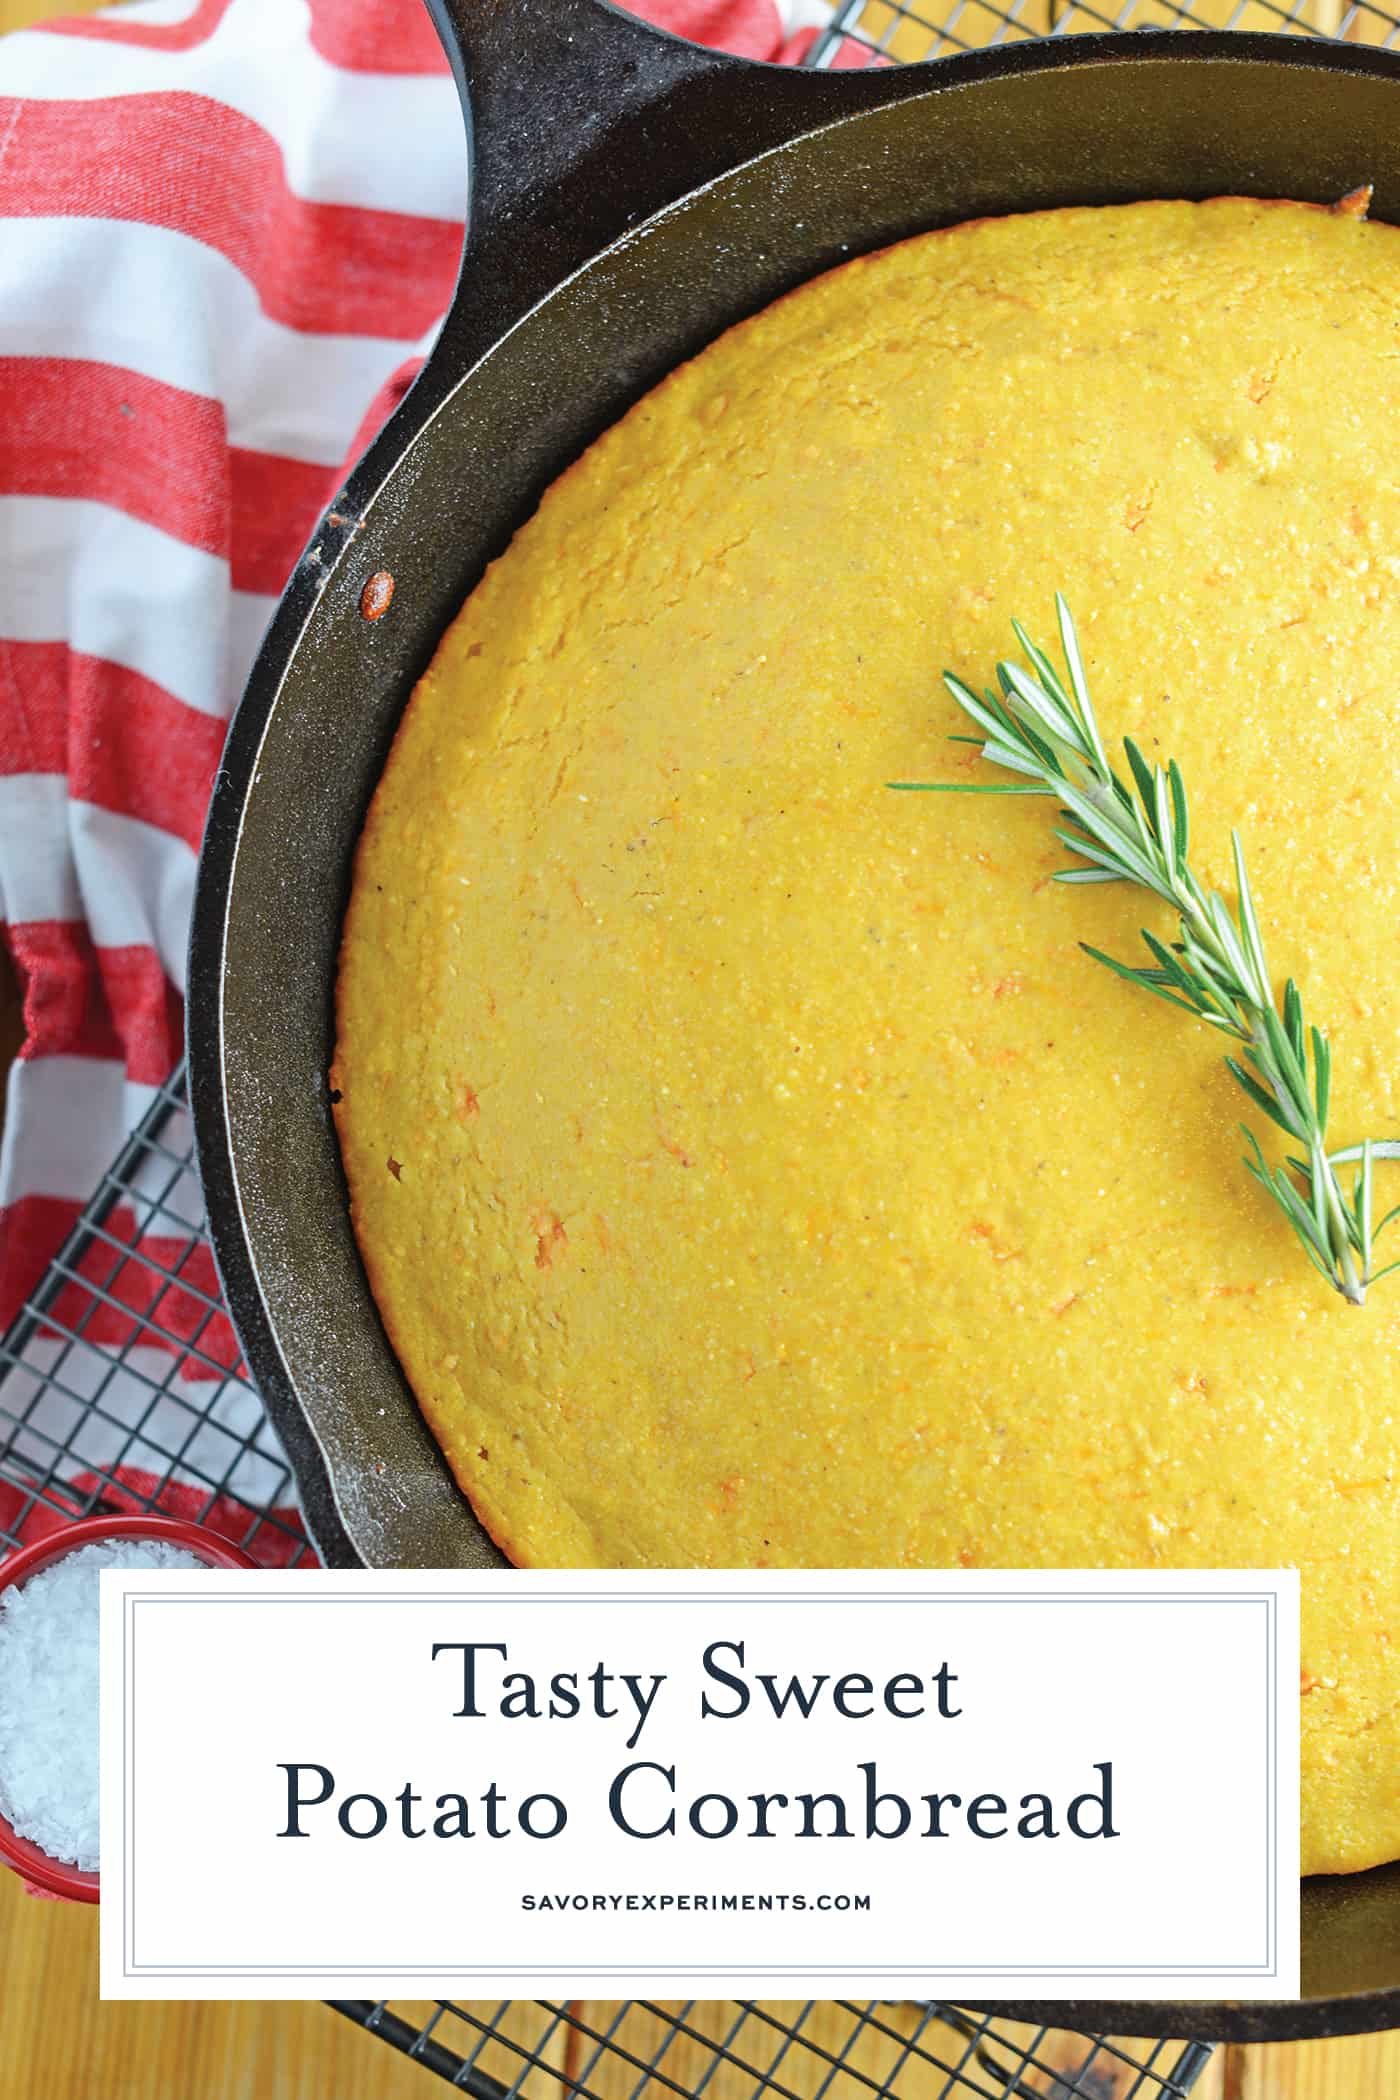 Sweet Potato Cornbread is a combination of two of my favorite fall foods: sweet potatoes and cornbread. Serve with your favorite chili or fried chicken! #sweetpotatocornbread #sweetcornbread www.savoryexperiments.com